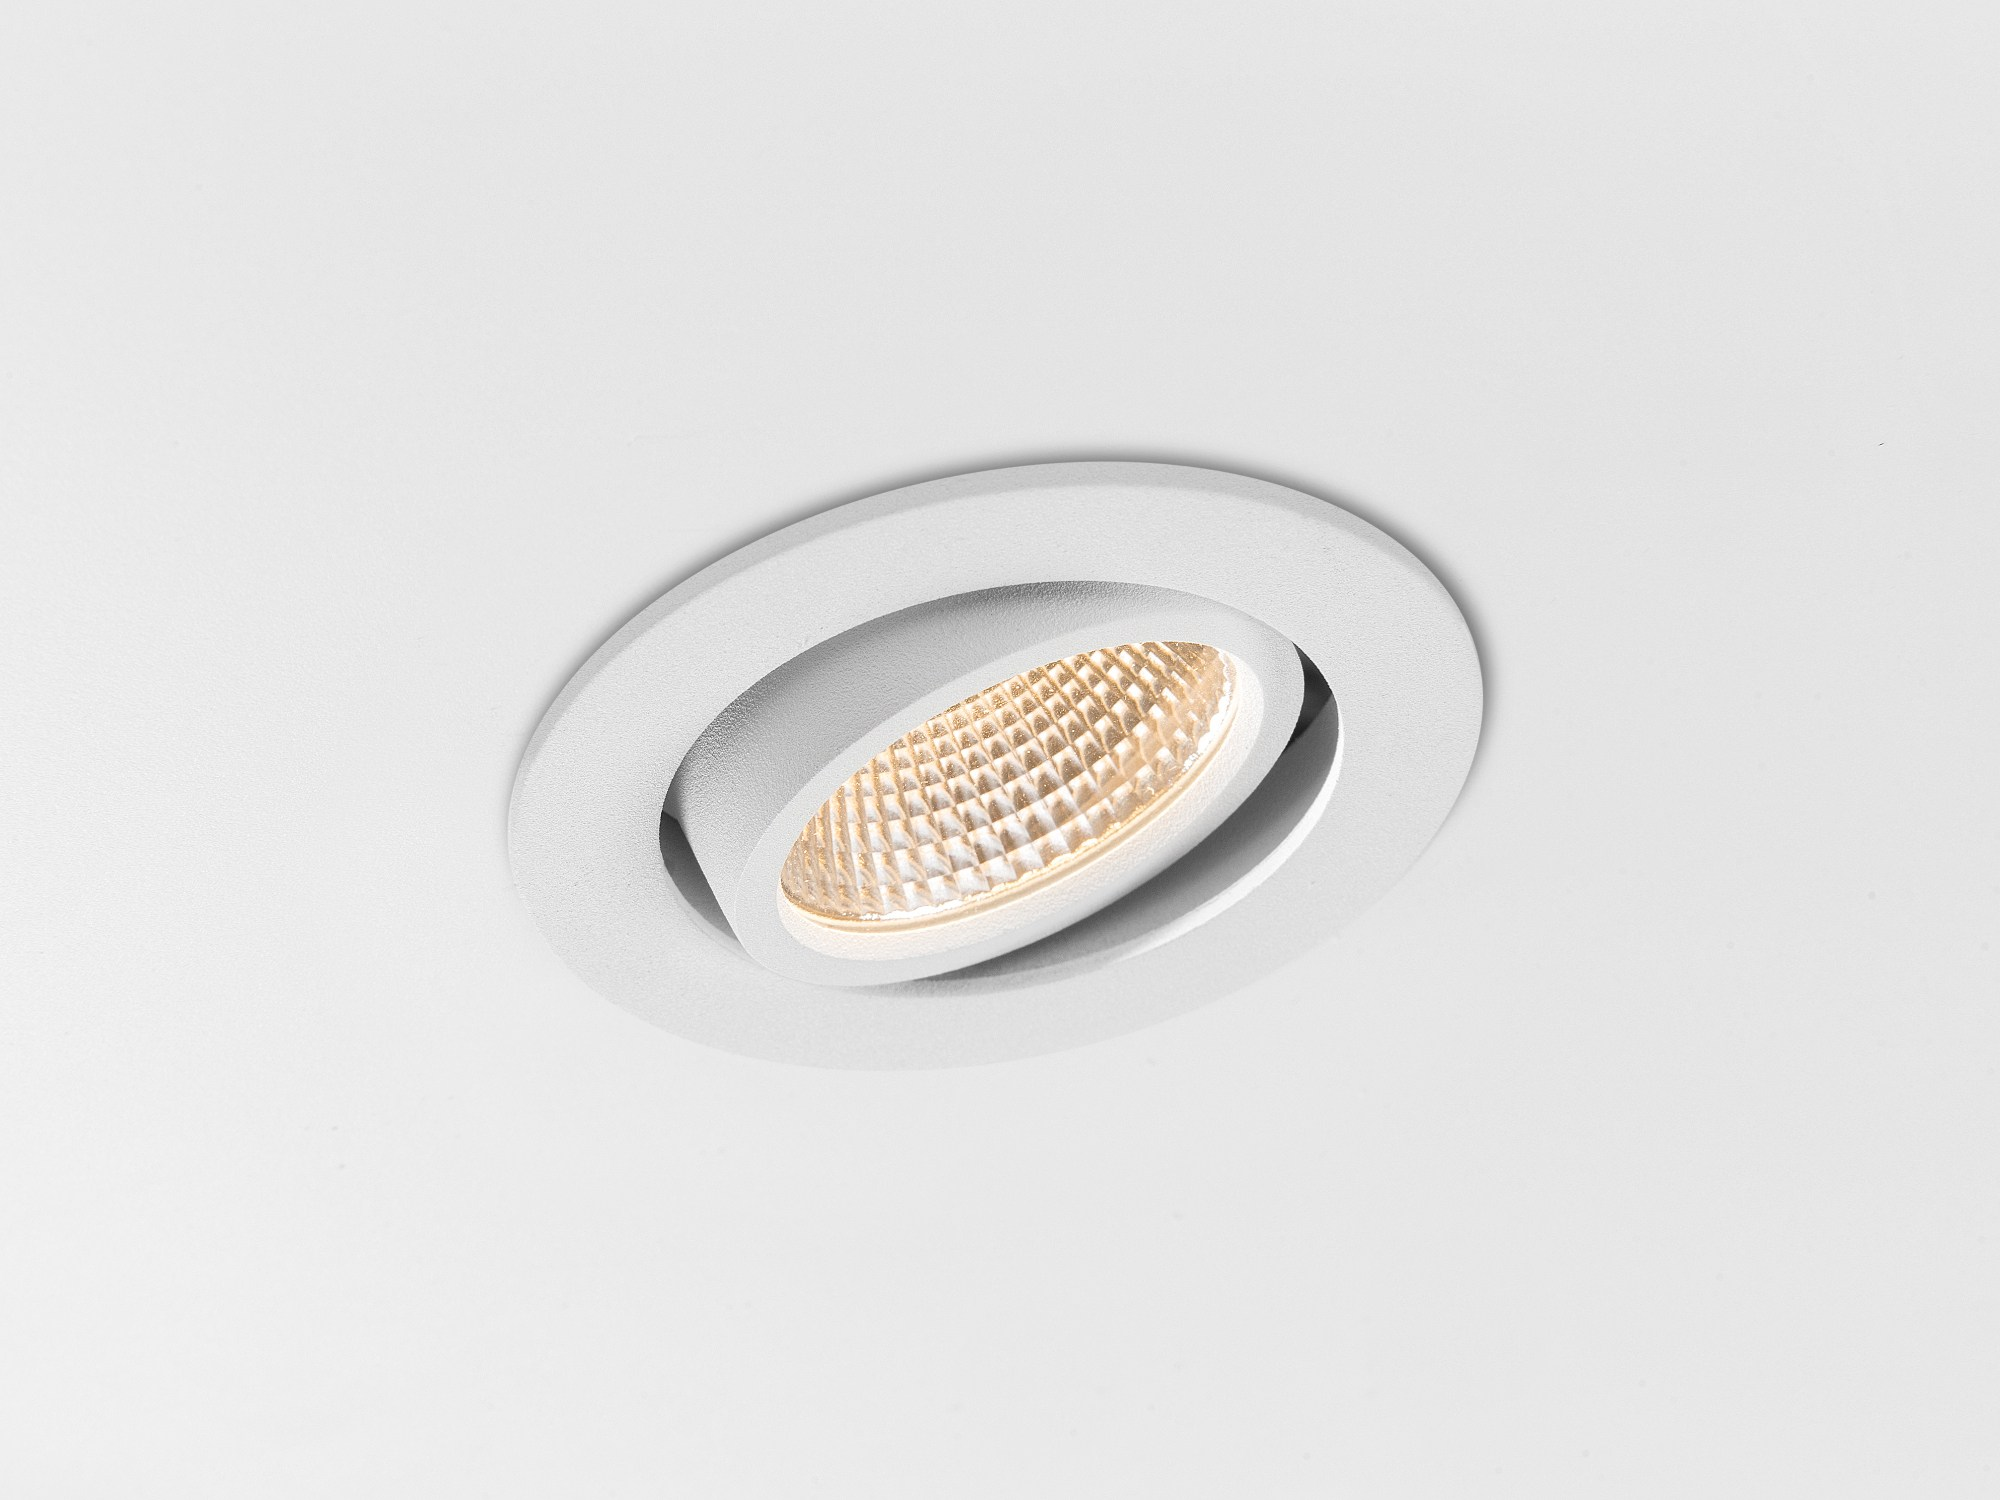 Lampade Incasso Led Lampada Da Incasso A Led Orientabile K77 Adjustable By